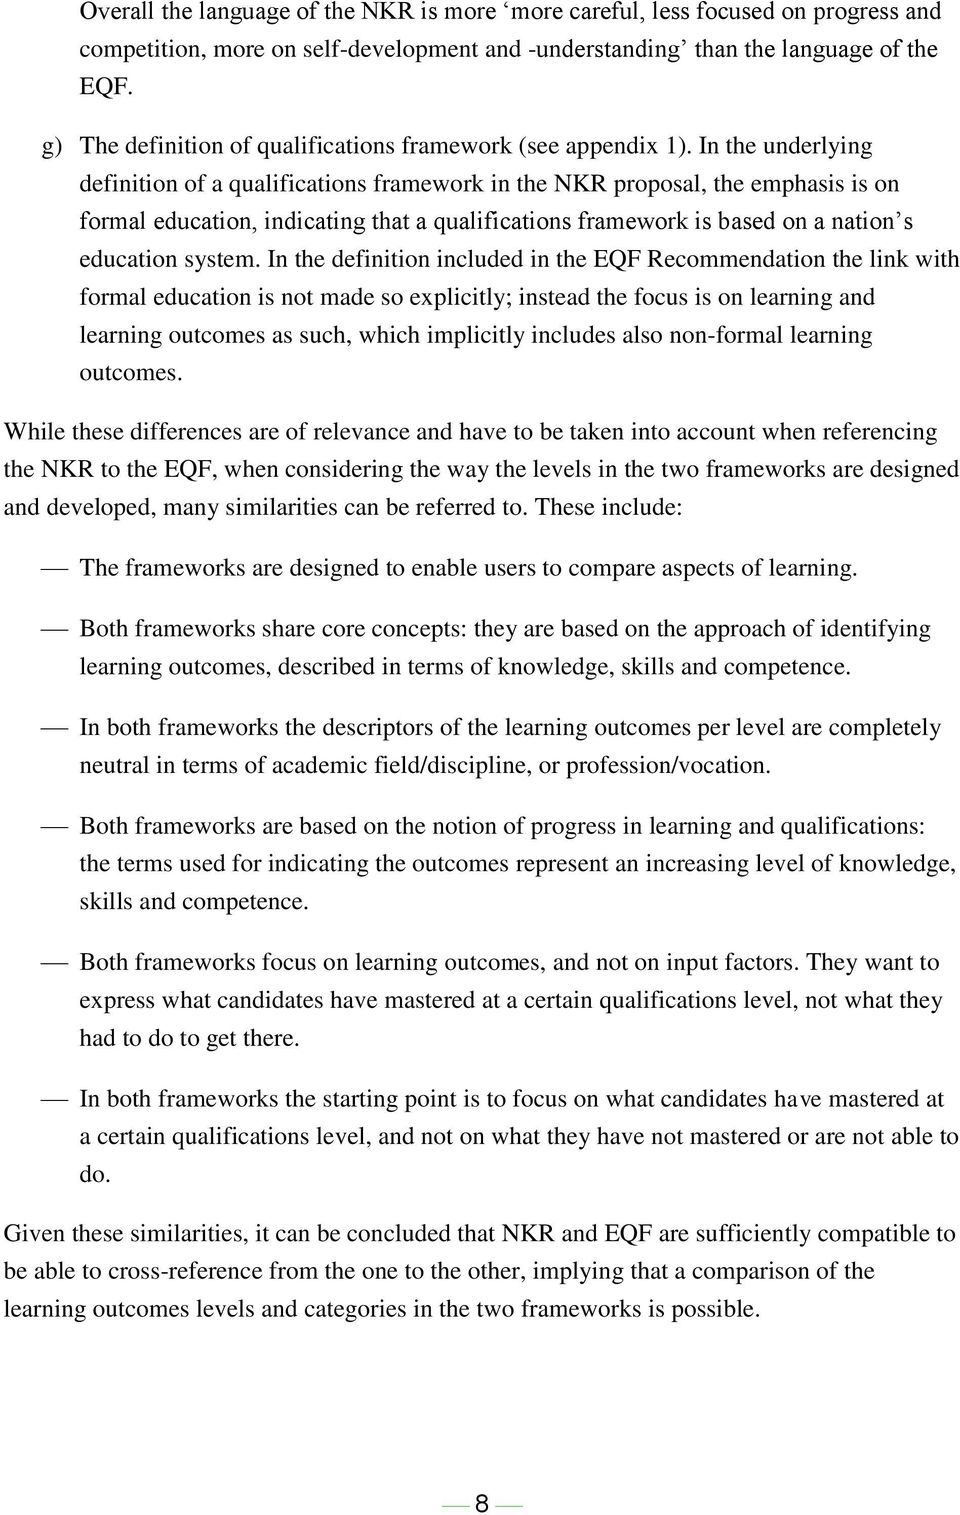 In the underlying definition of a qualifications framework in the NKR proposal, the emphasis is on formal education, indicating that a qualifications framework is based on a nation s education system.